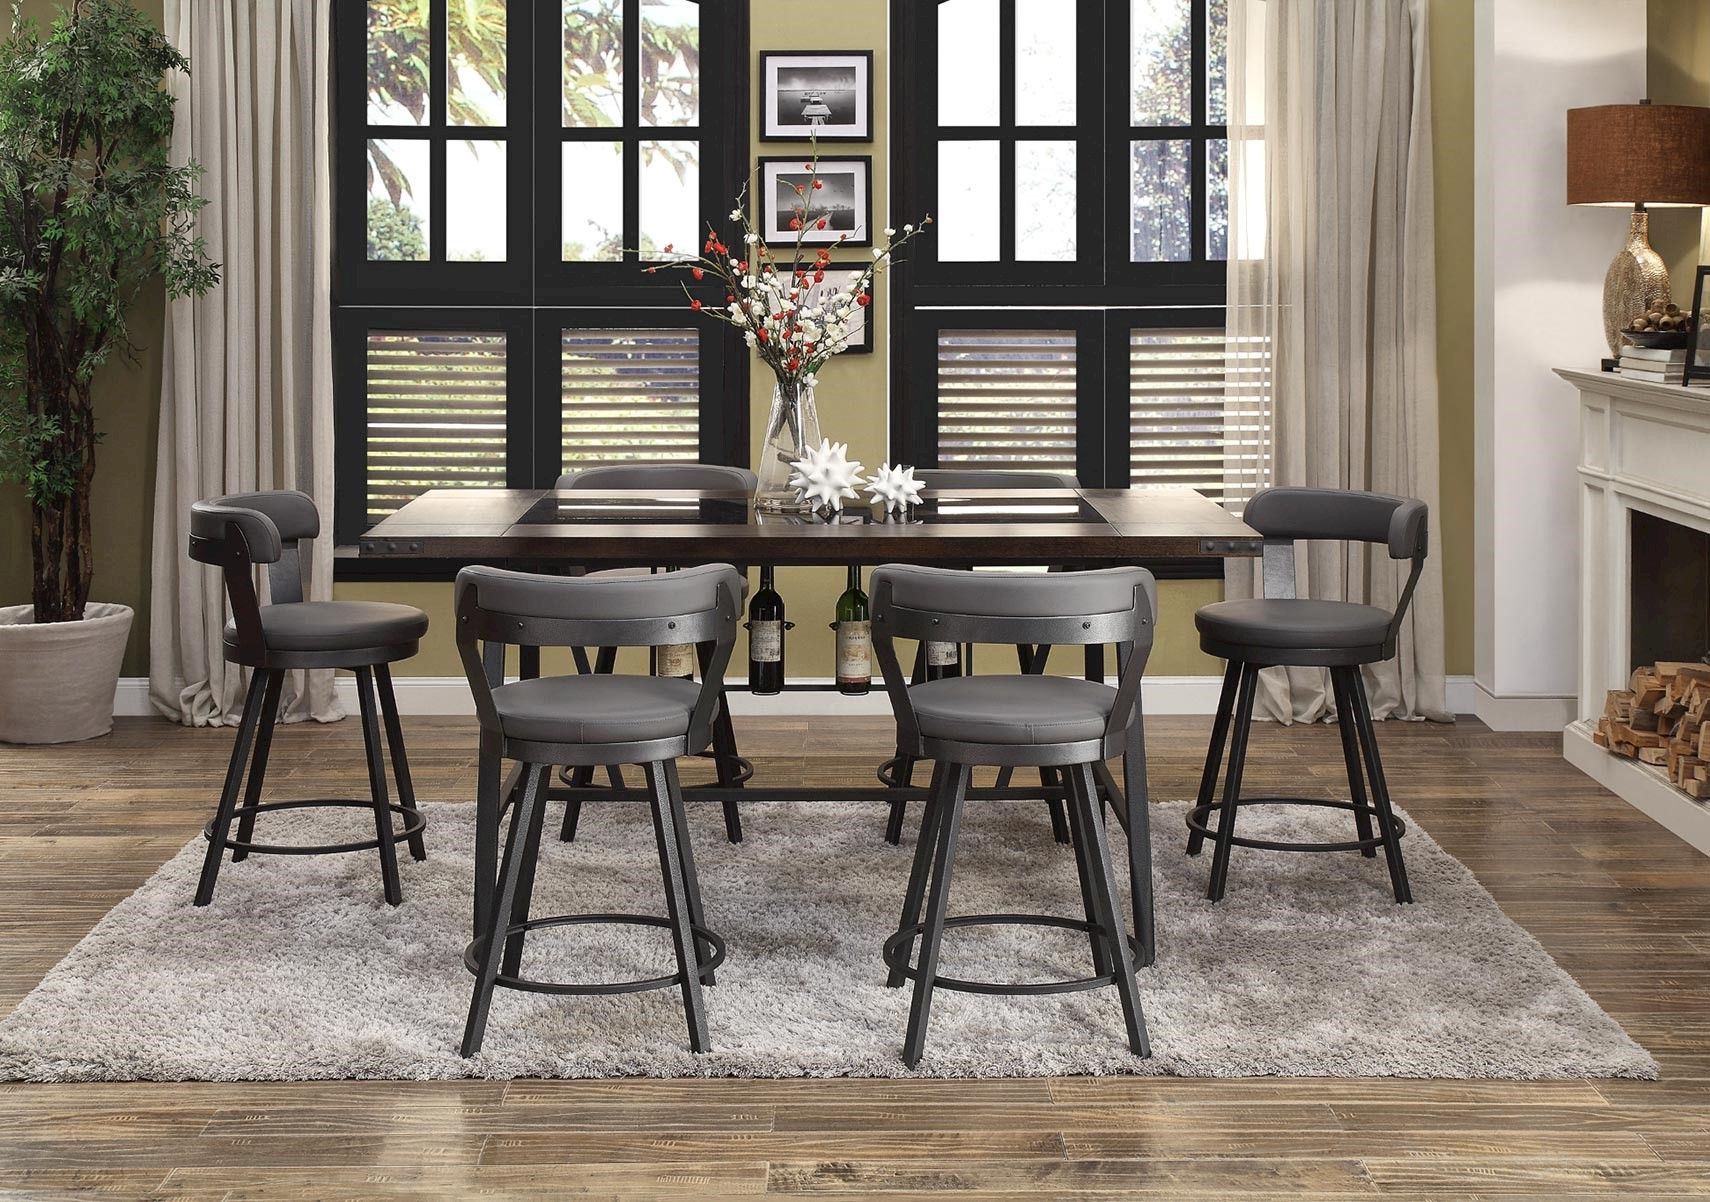 Lacks Dolores Gray 7 Pc Counter Height Dining Set Counter Height Dining Sets Counter Height Dining Table Counter Height Dining Table Set